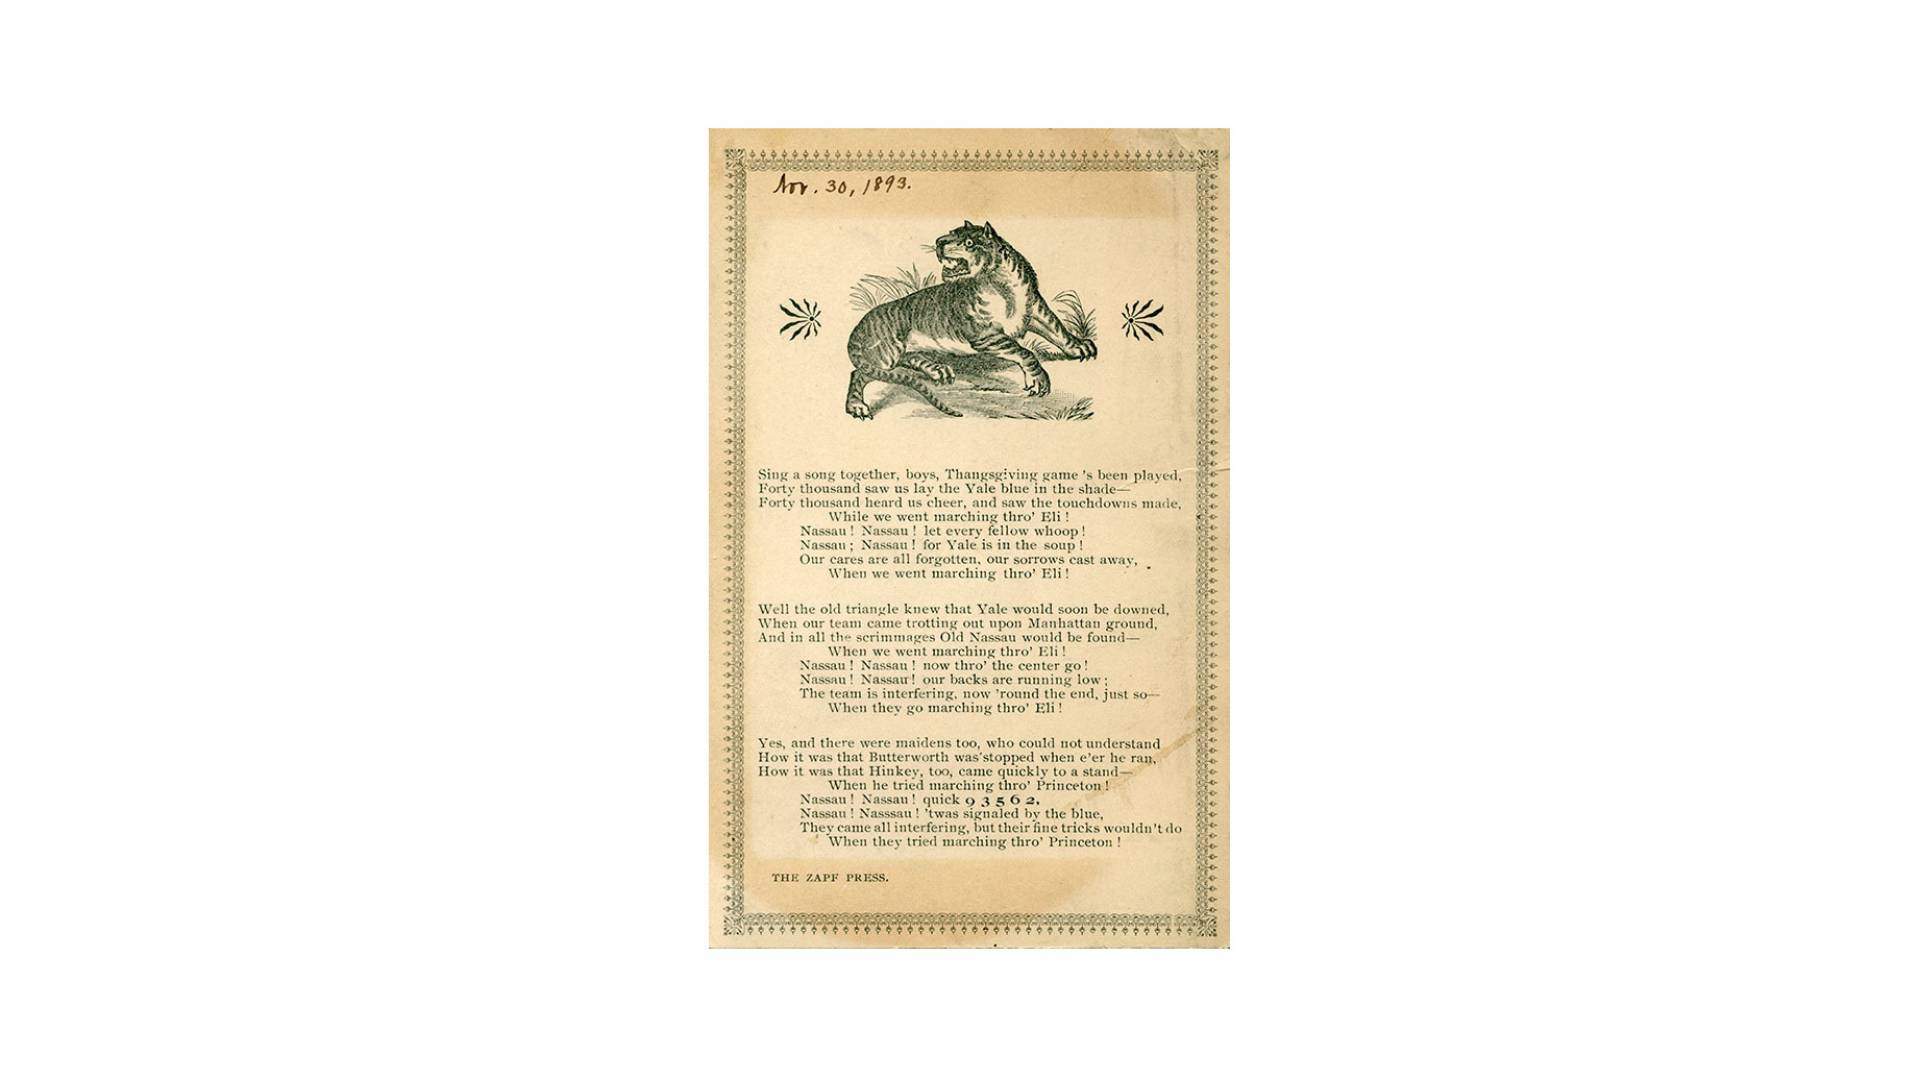 "archival printed page of poem: ""Sing a song together, boys, Thanksgiving game's been played,/ Forty tousand saw us lay the Yale blue in the shade—/Forty thousand heard us cheer, and saw the touchdowns made,/ While we went marching thro' Eli!/ Nassau! Nassau! now thro' the center go! / Nassau! Nassau! our backs are running low:/ The interfering, now thro' Eli!/Yes, and there were maidens too, who could not understand/How it was that Butterworth was'stopped when e'er he ran,/ How it was that Hinkley, too, ca"